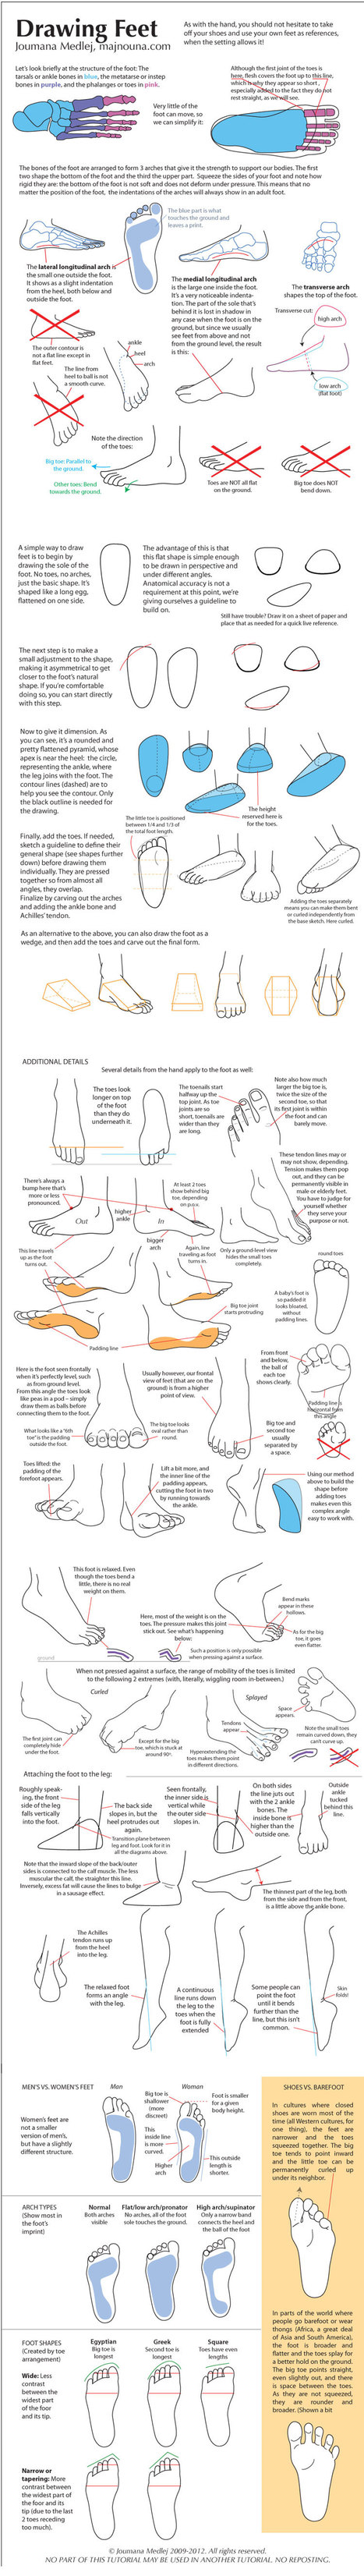 Drawing Feet: One Step at a Time   art sculpture enseignement   Scoop.it